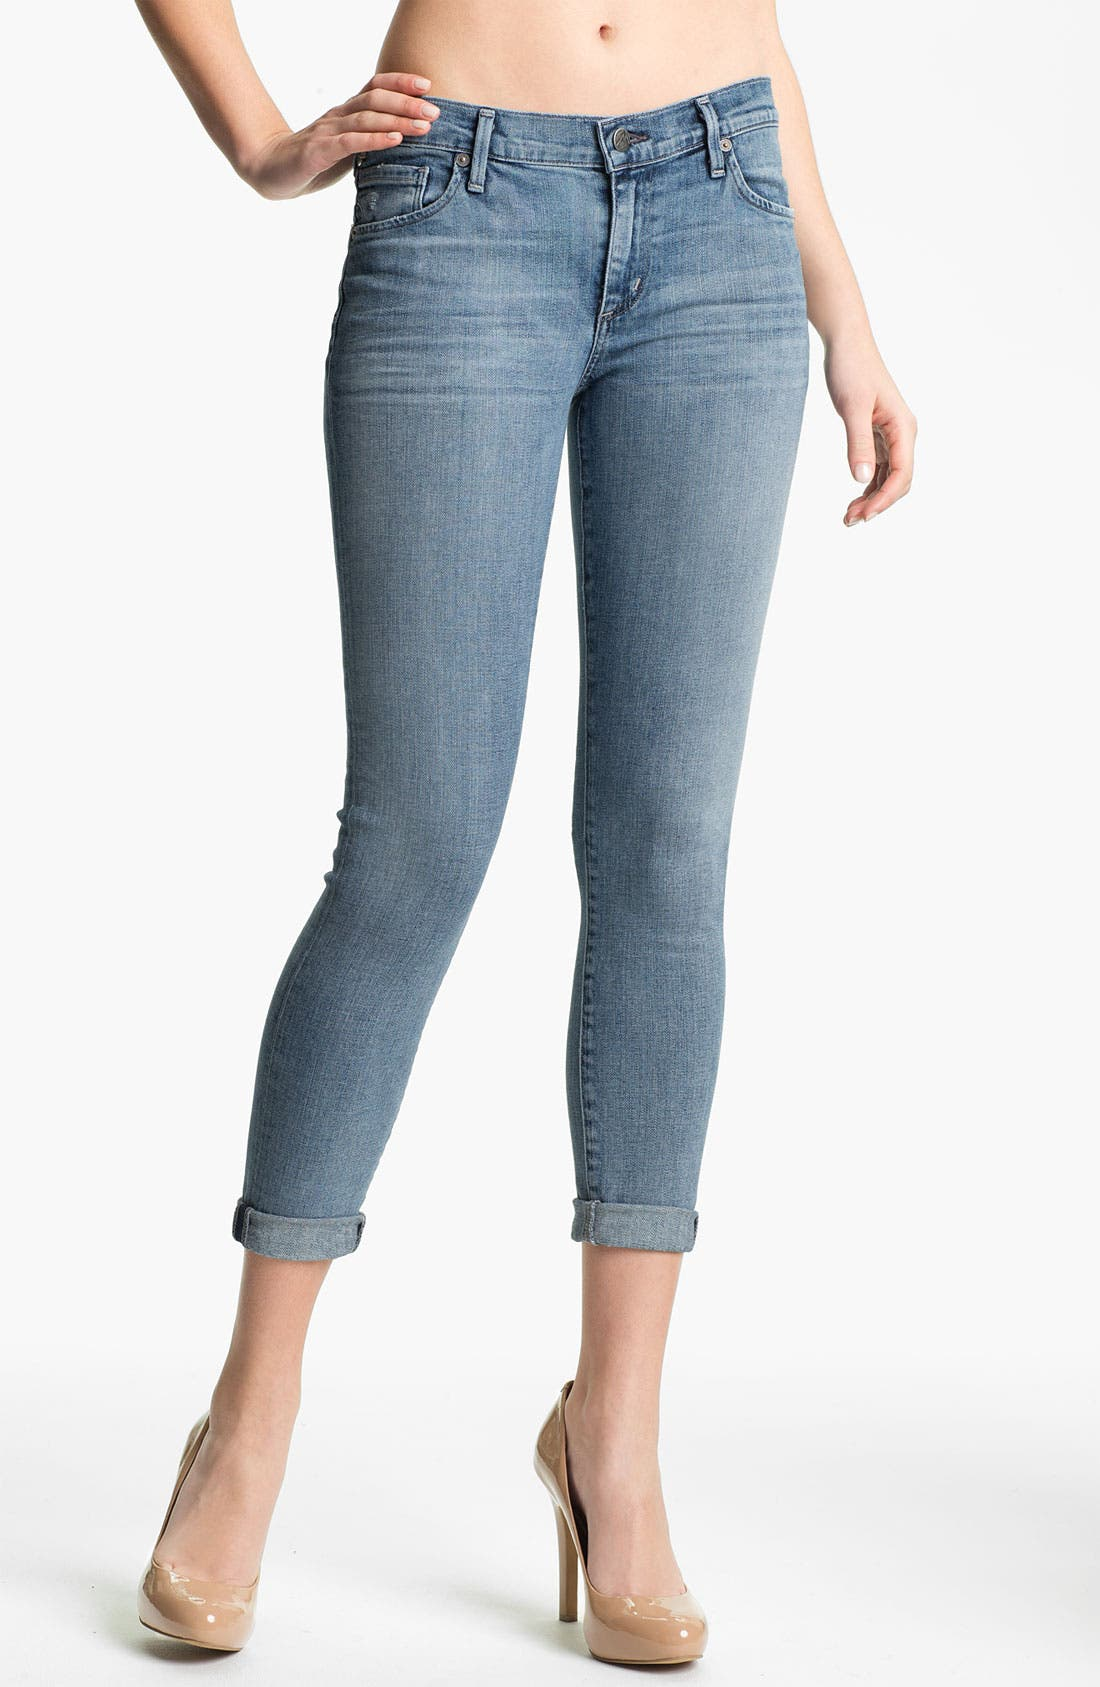 Alternate Image 1 Selected - Citizens of Humanity 'Thompson' Skinny Stretch Jeans (Crystal)